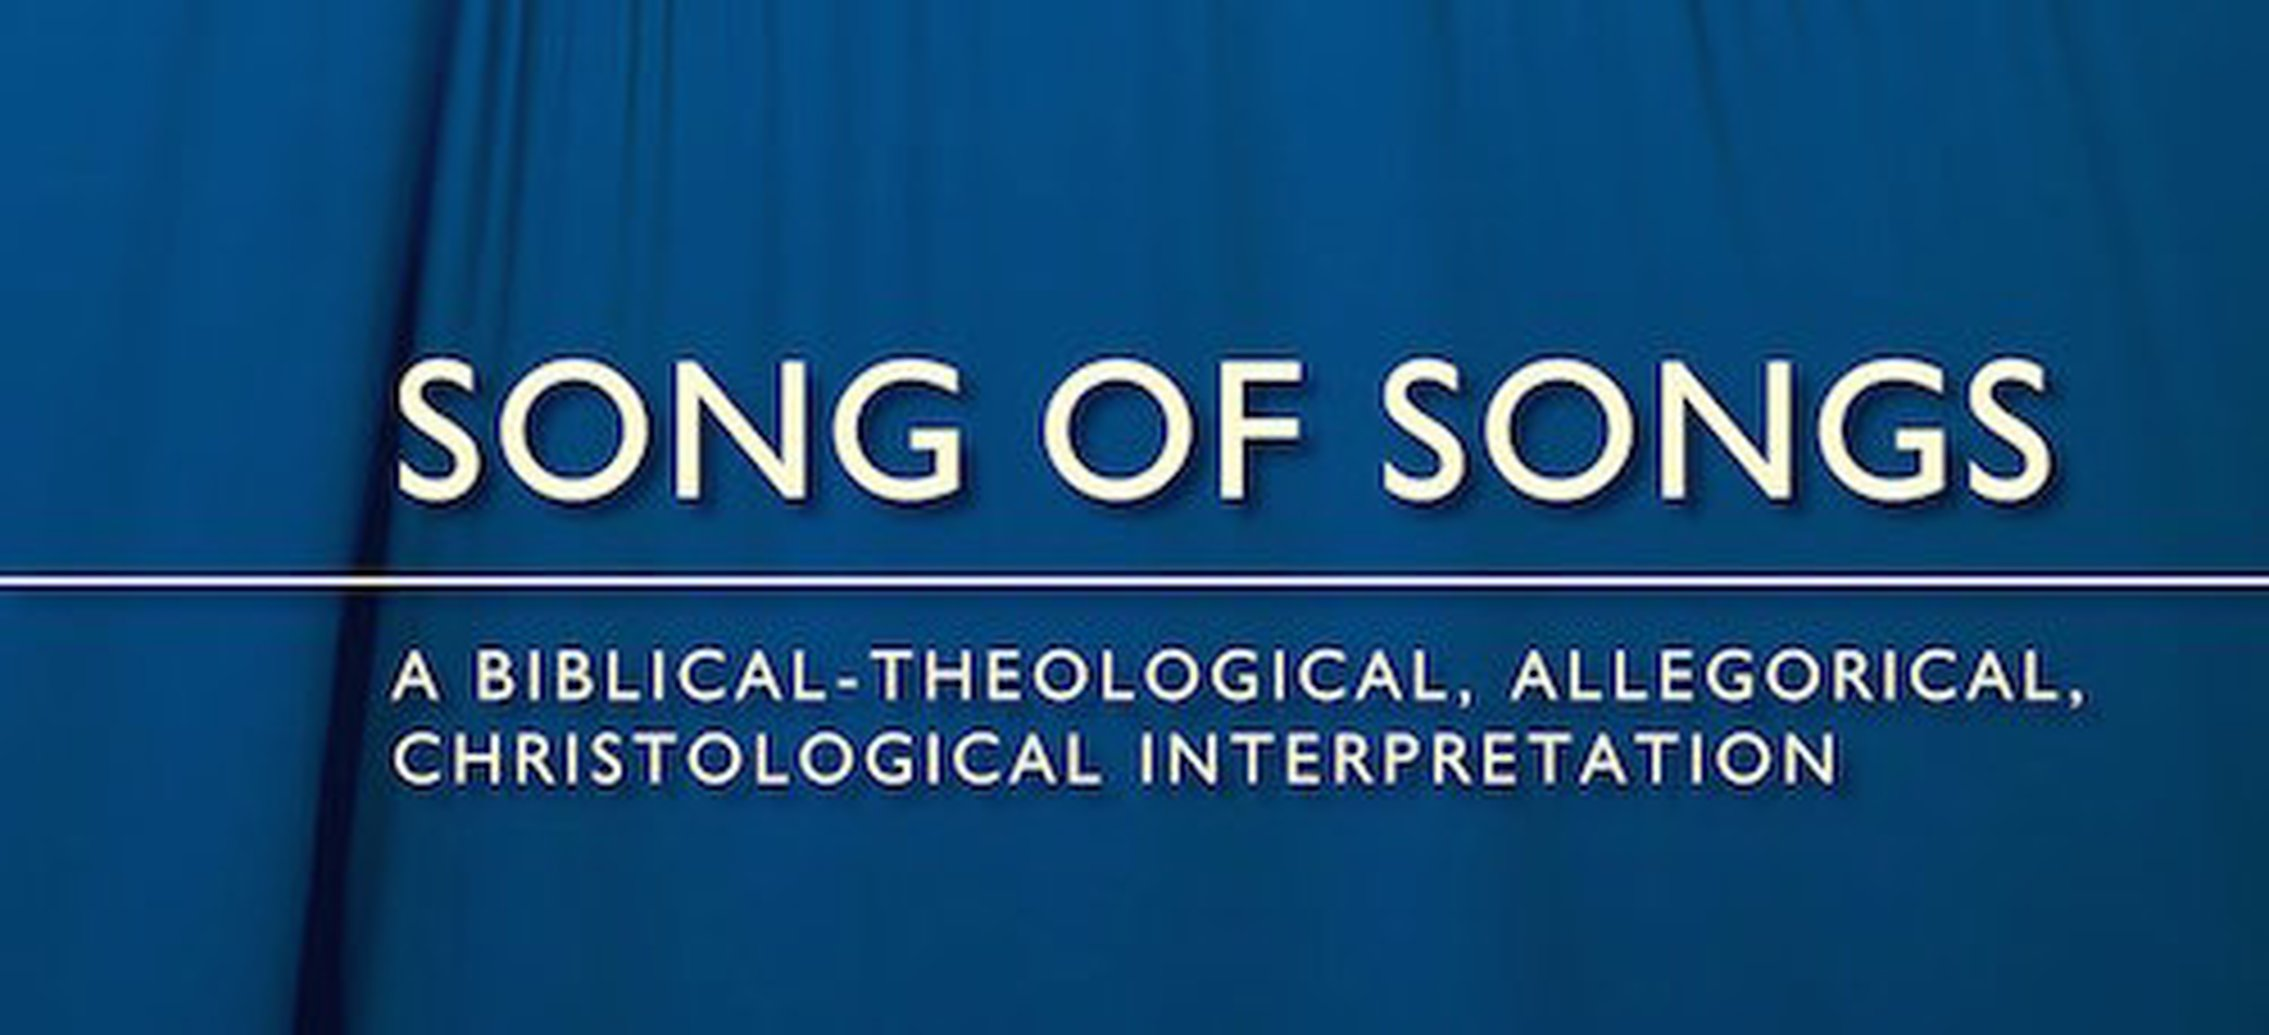 Why You Need to Preach the Song of Songs - Dr. Jim Hamilton